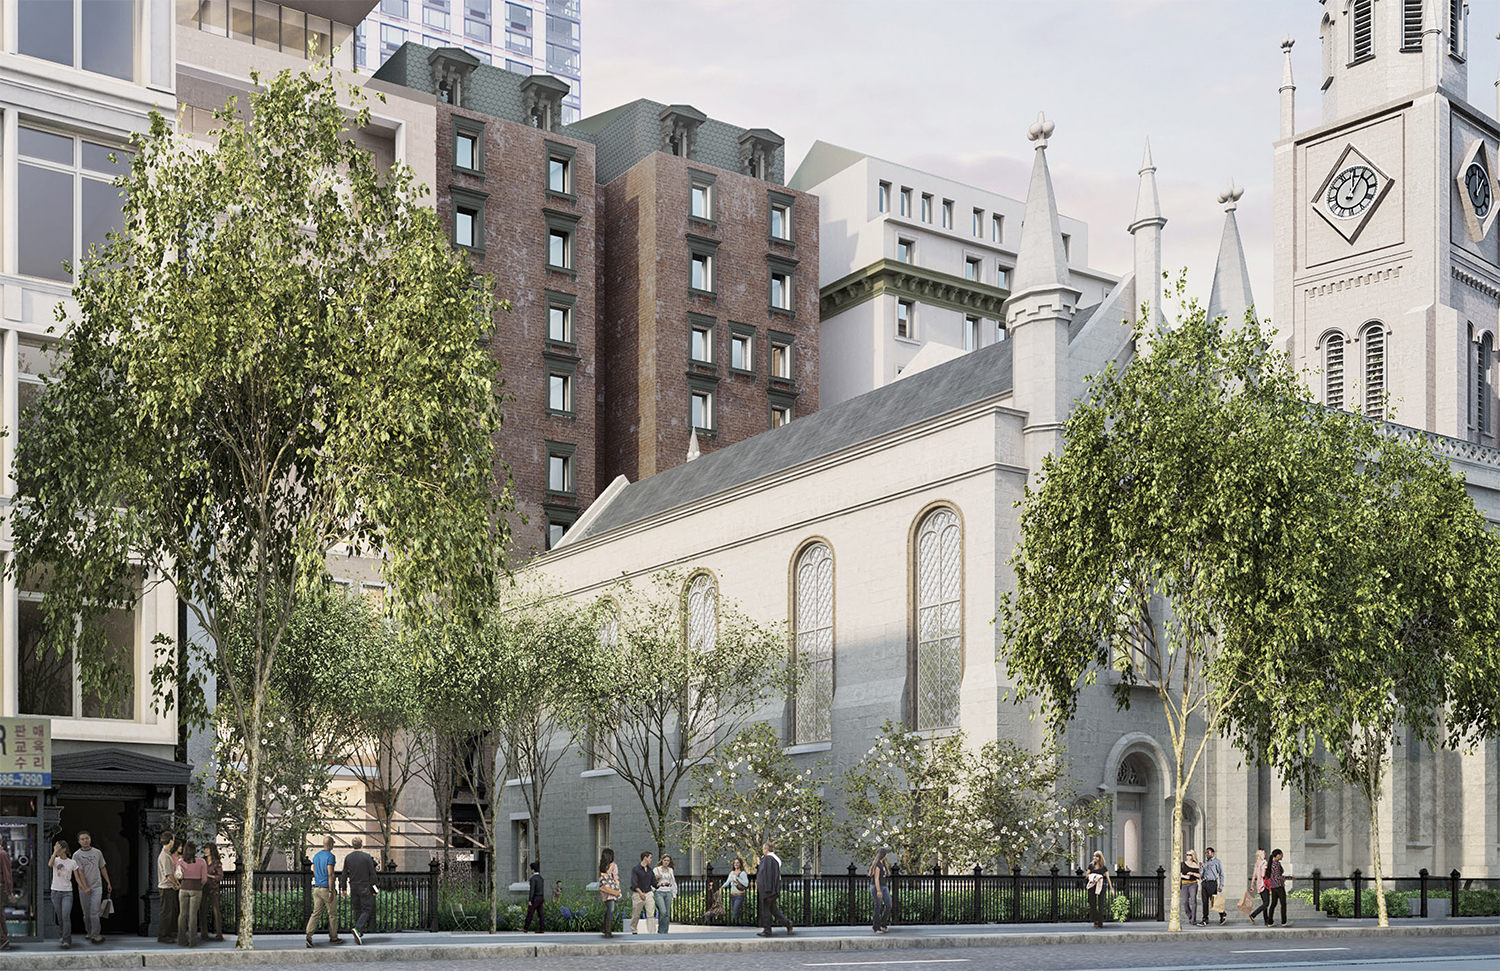 Proposed new western facade for the Marble Collegiate Church.